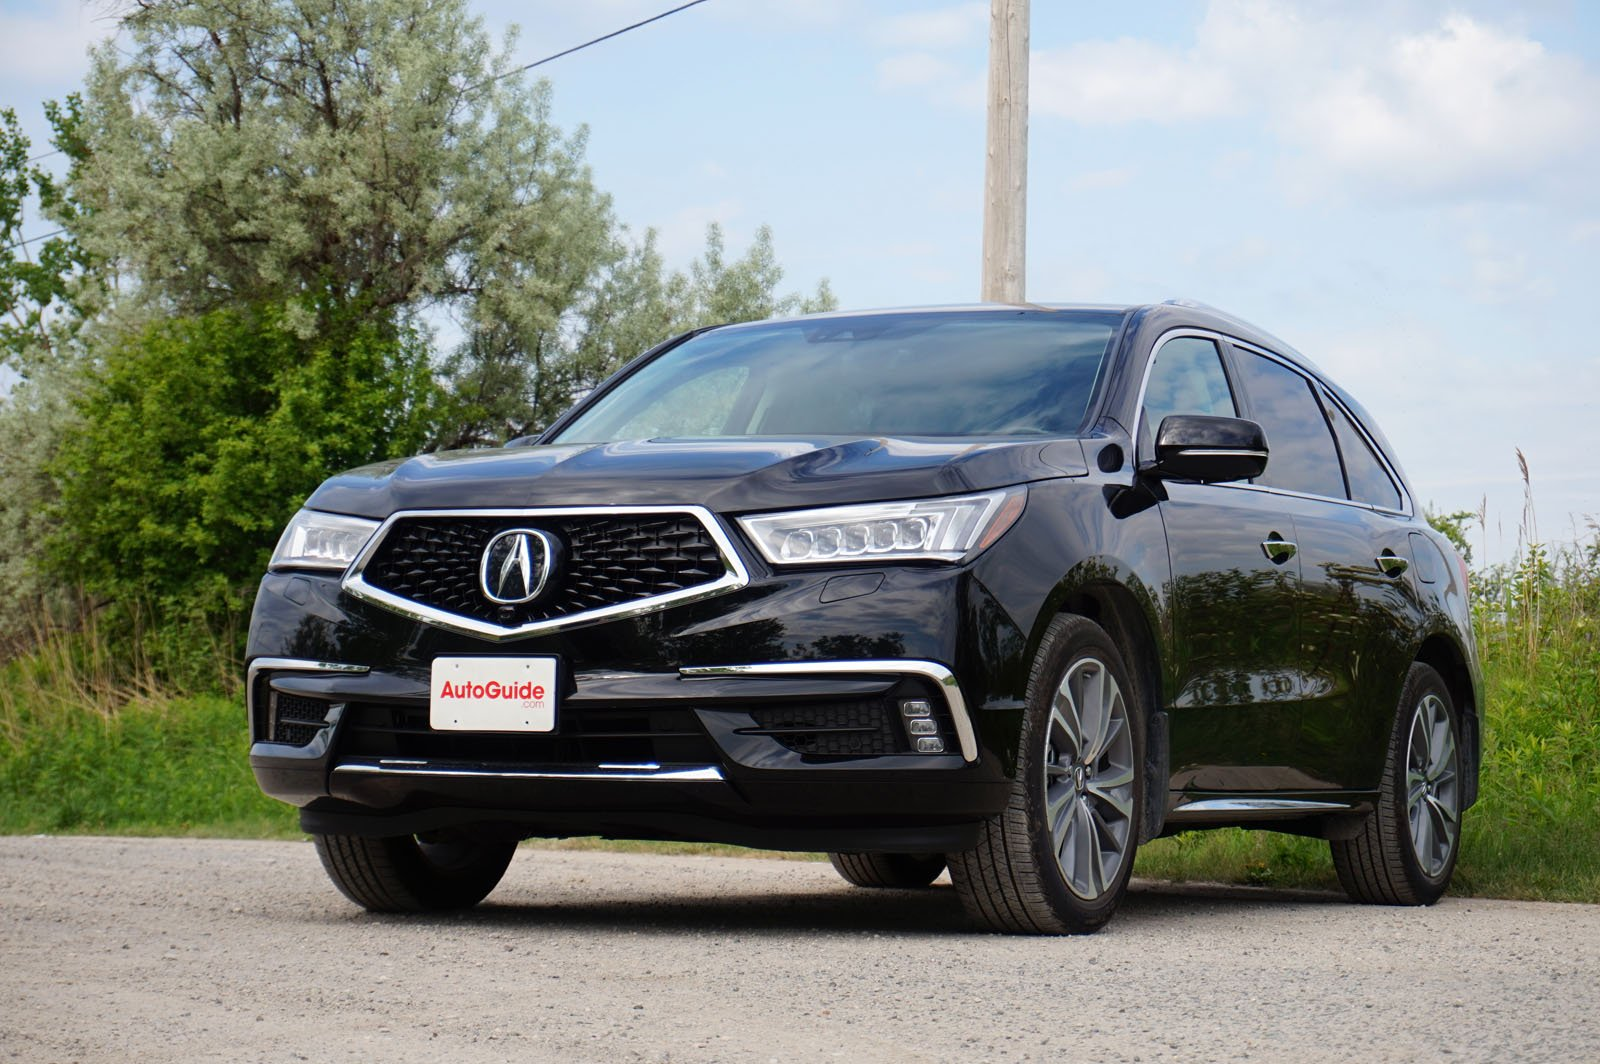 2021 Acura Mdx Youtube - Car Wallpaper